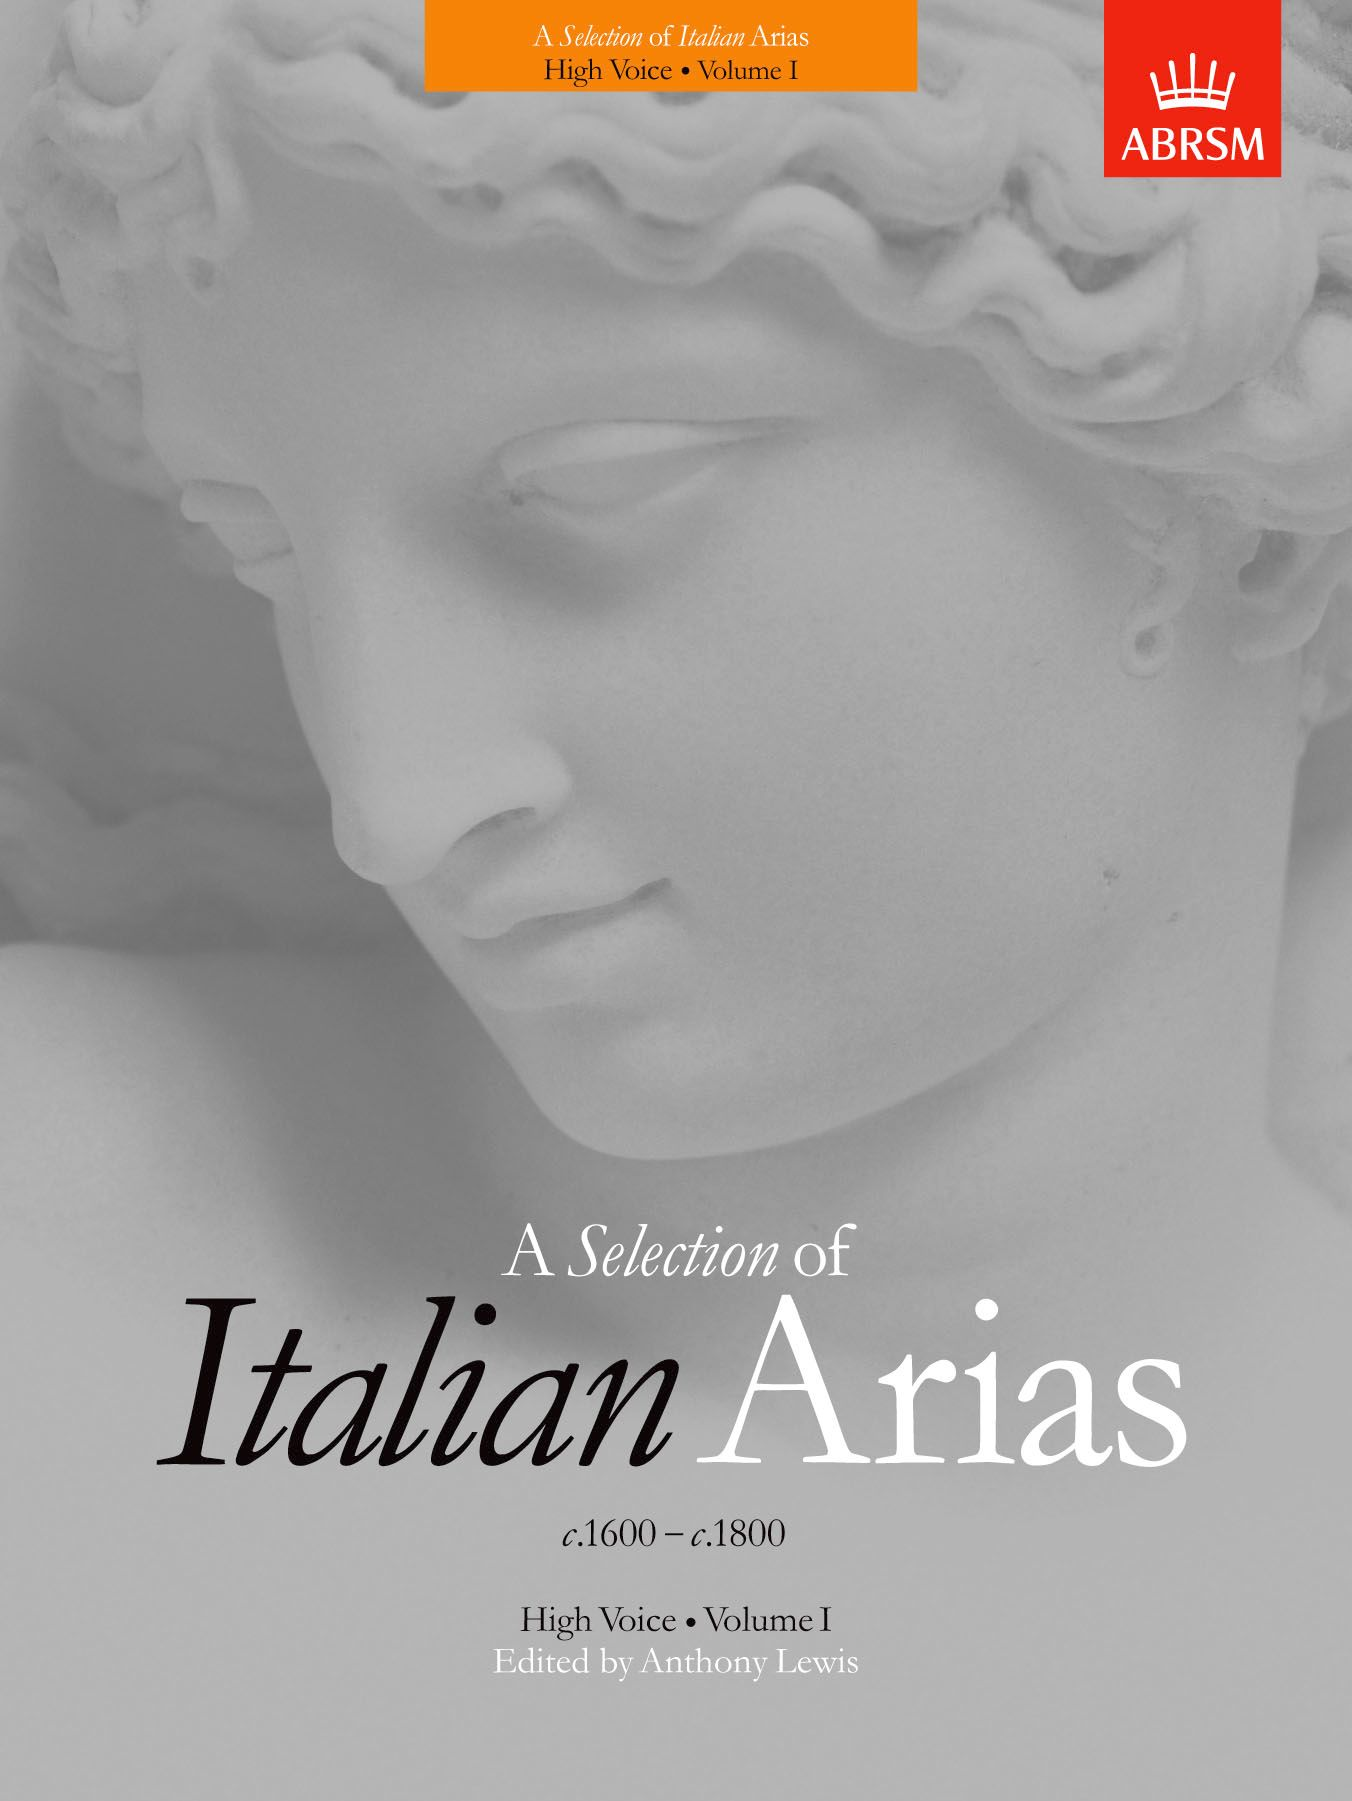 A Selection of Italian Arias 1600-1800, Volume I High Voice